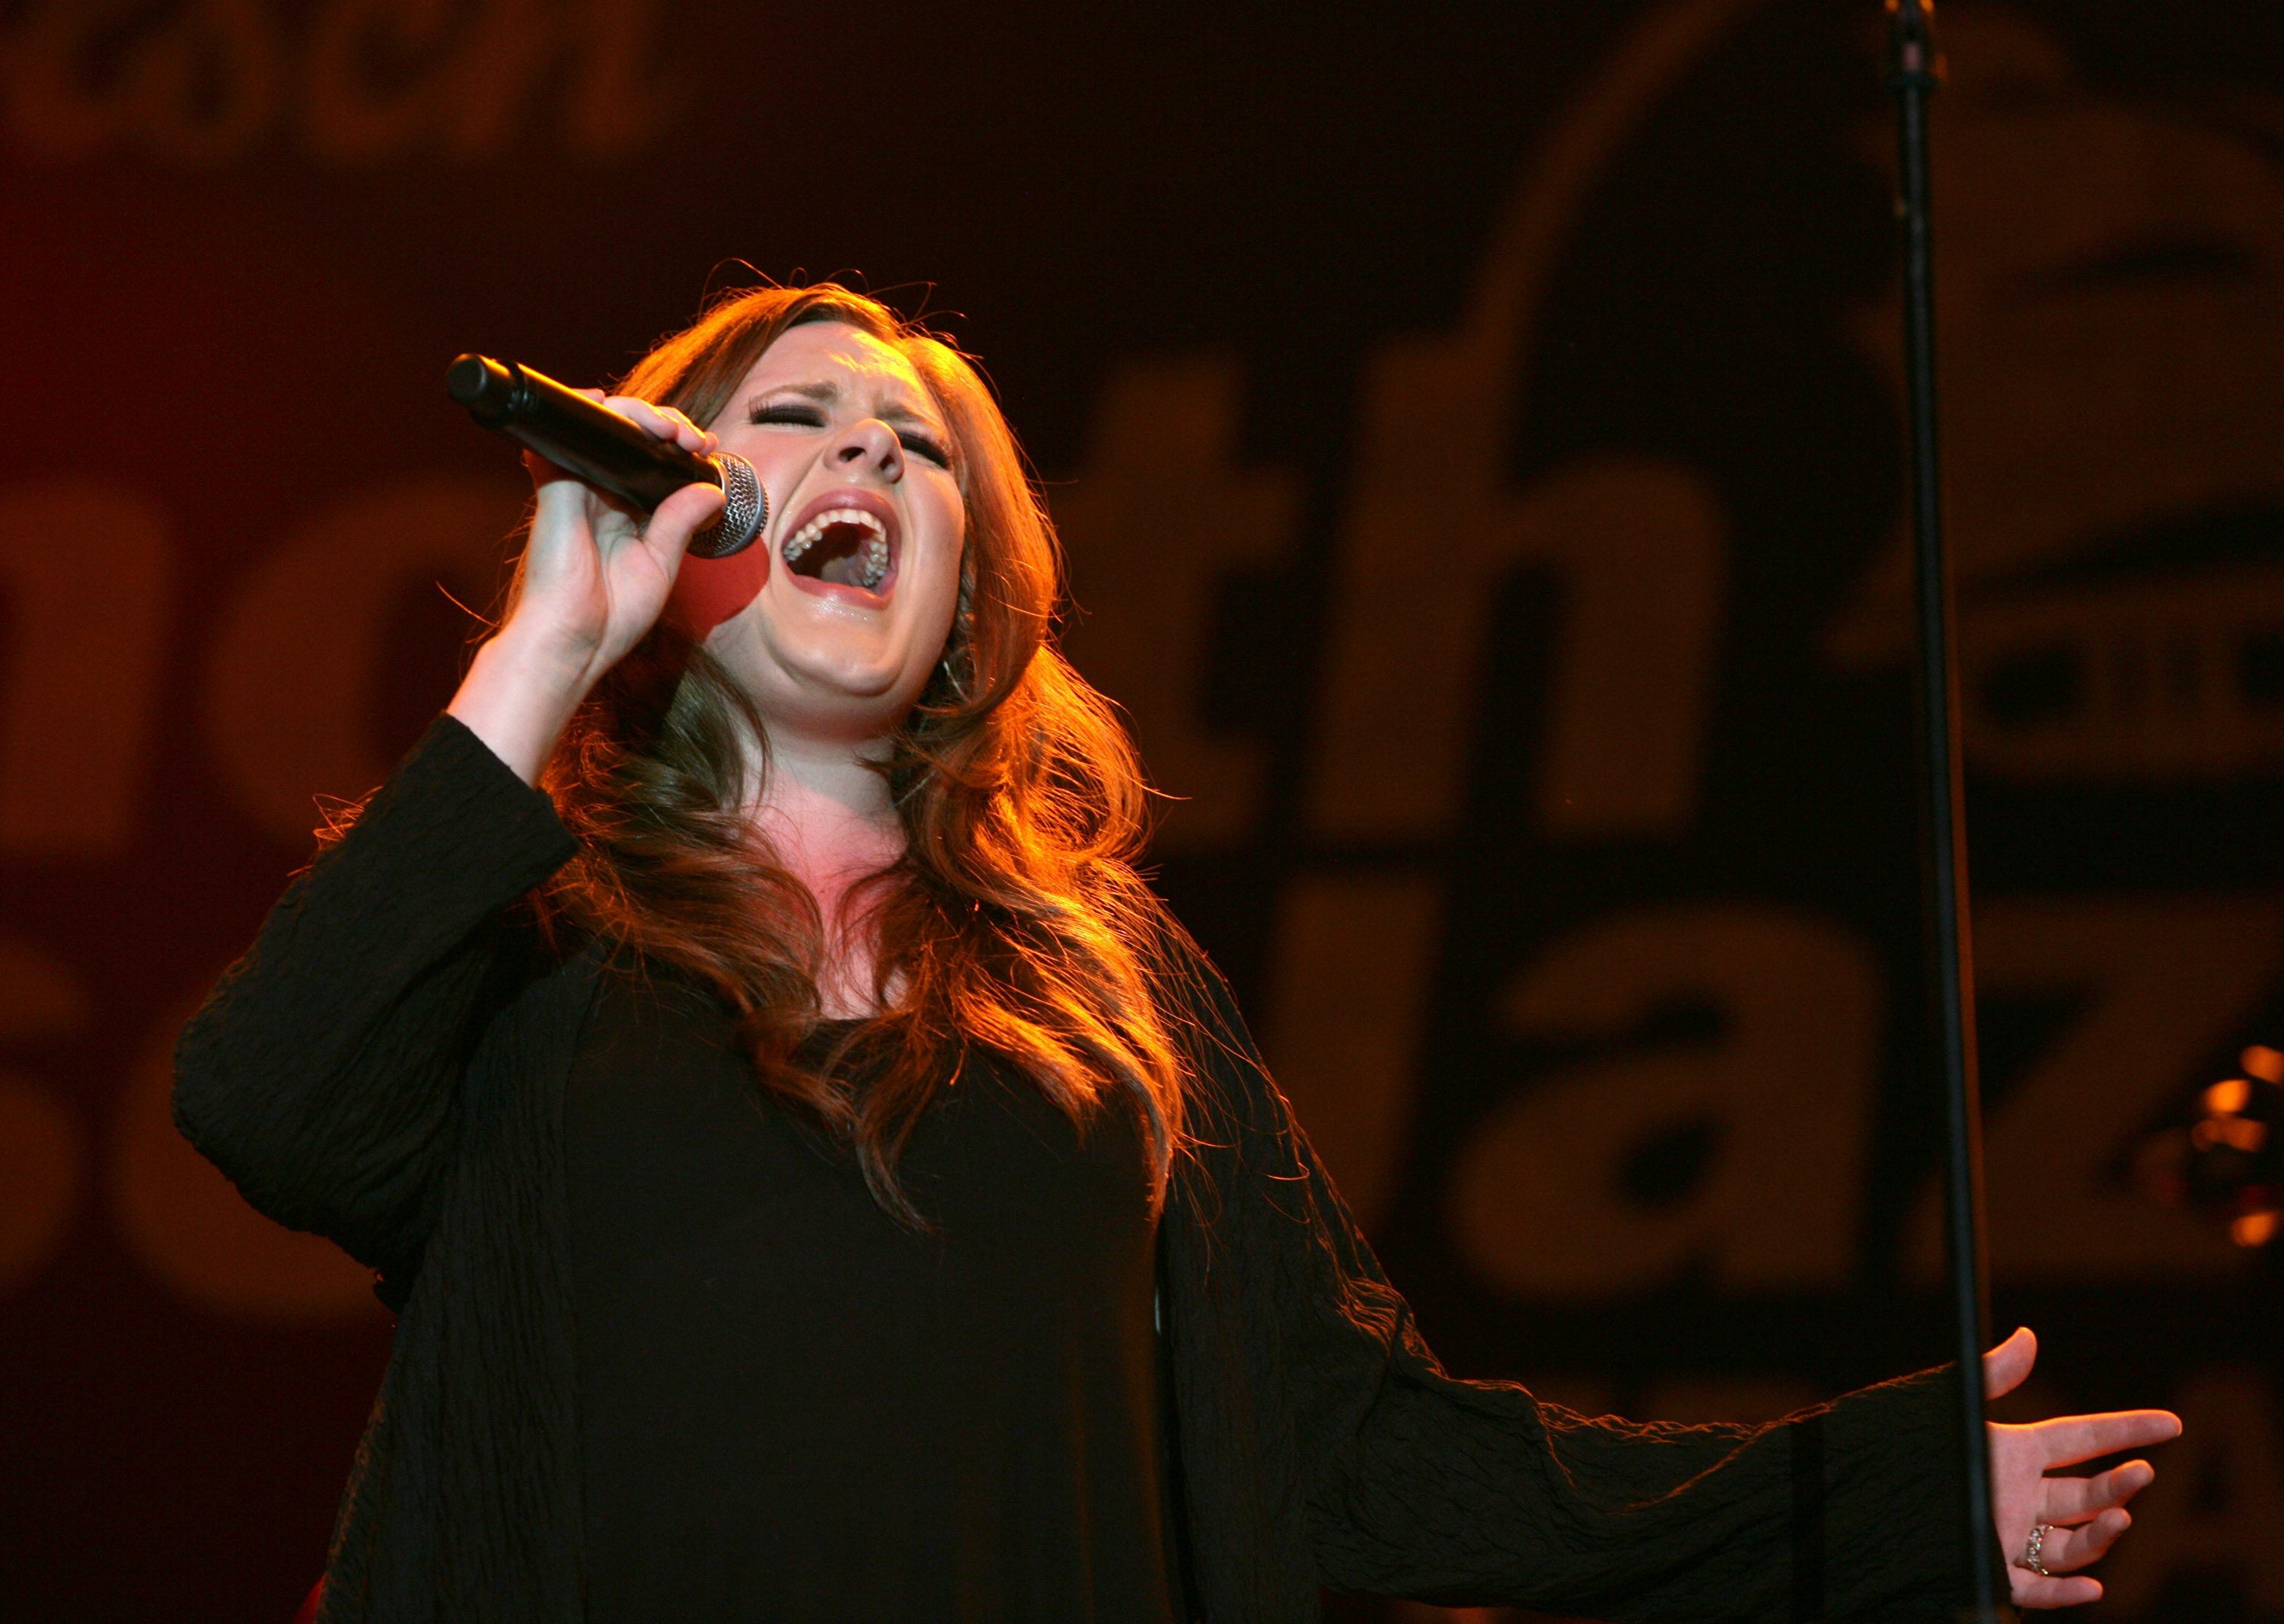 The Story of How Adele Became Famous Will Make You Love Her